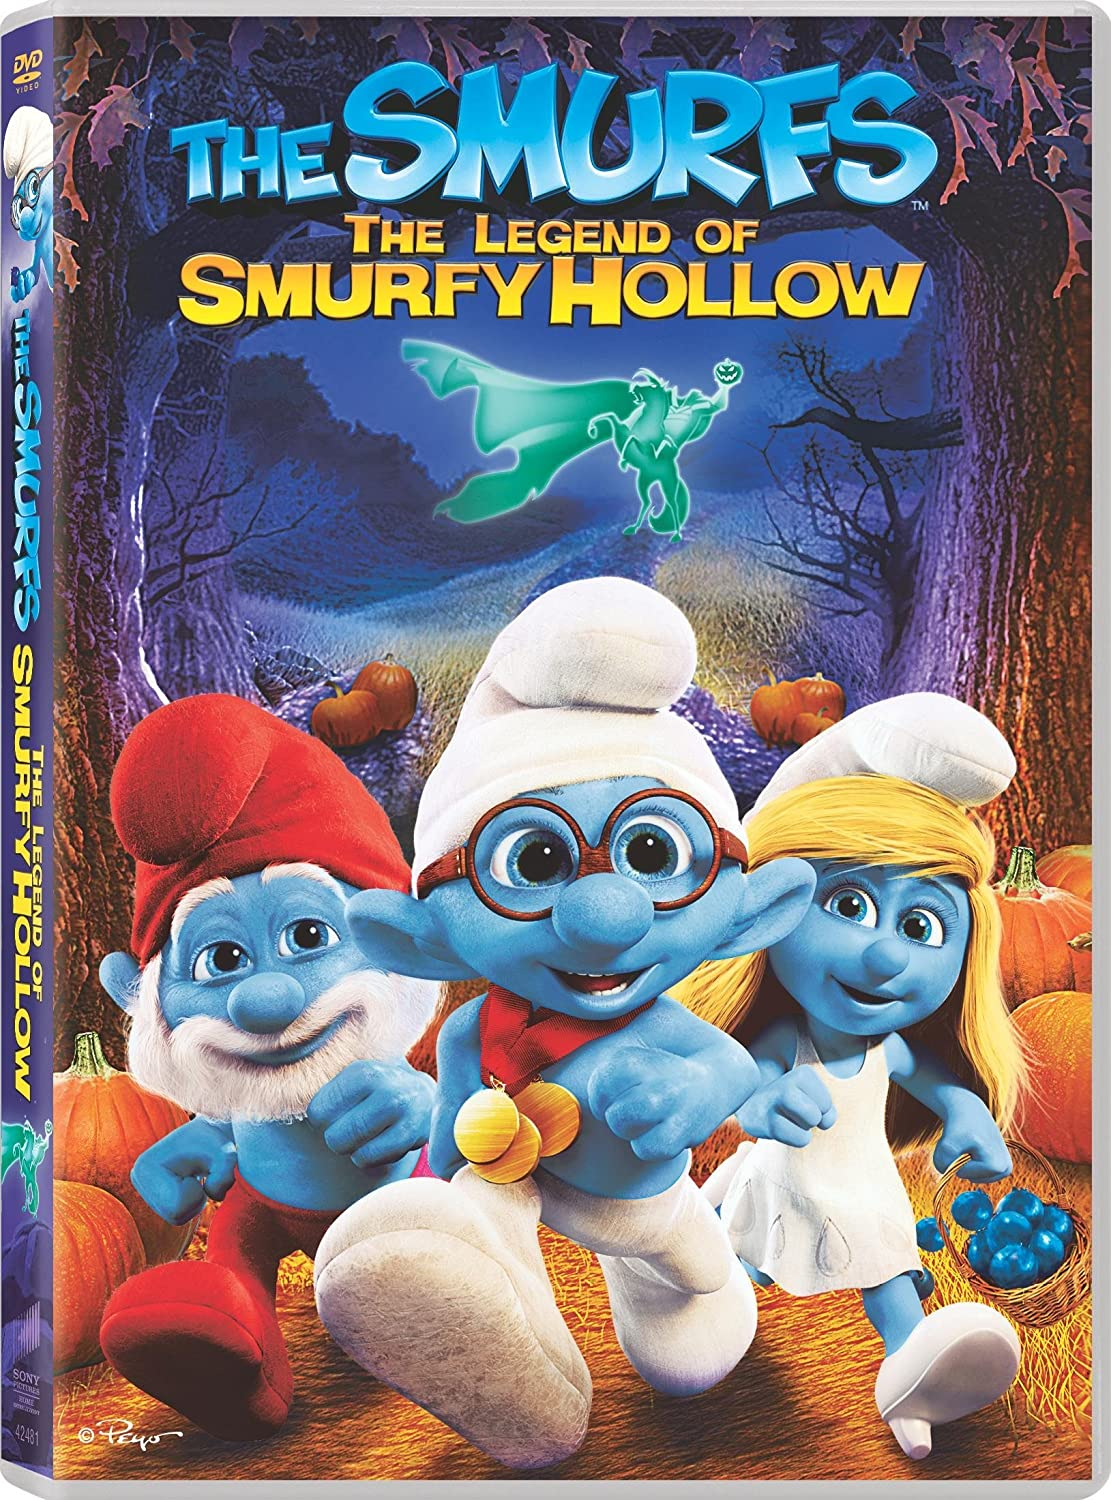 The Smurfs. The legend of Smurfy Hollow [videorecording]